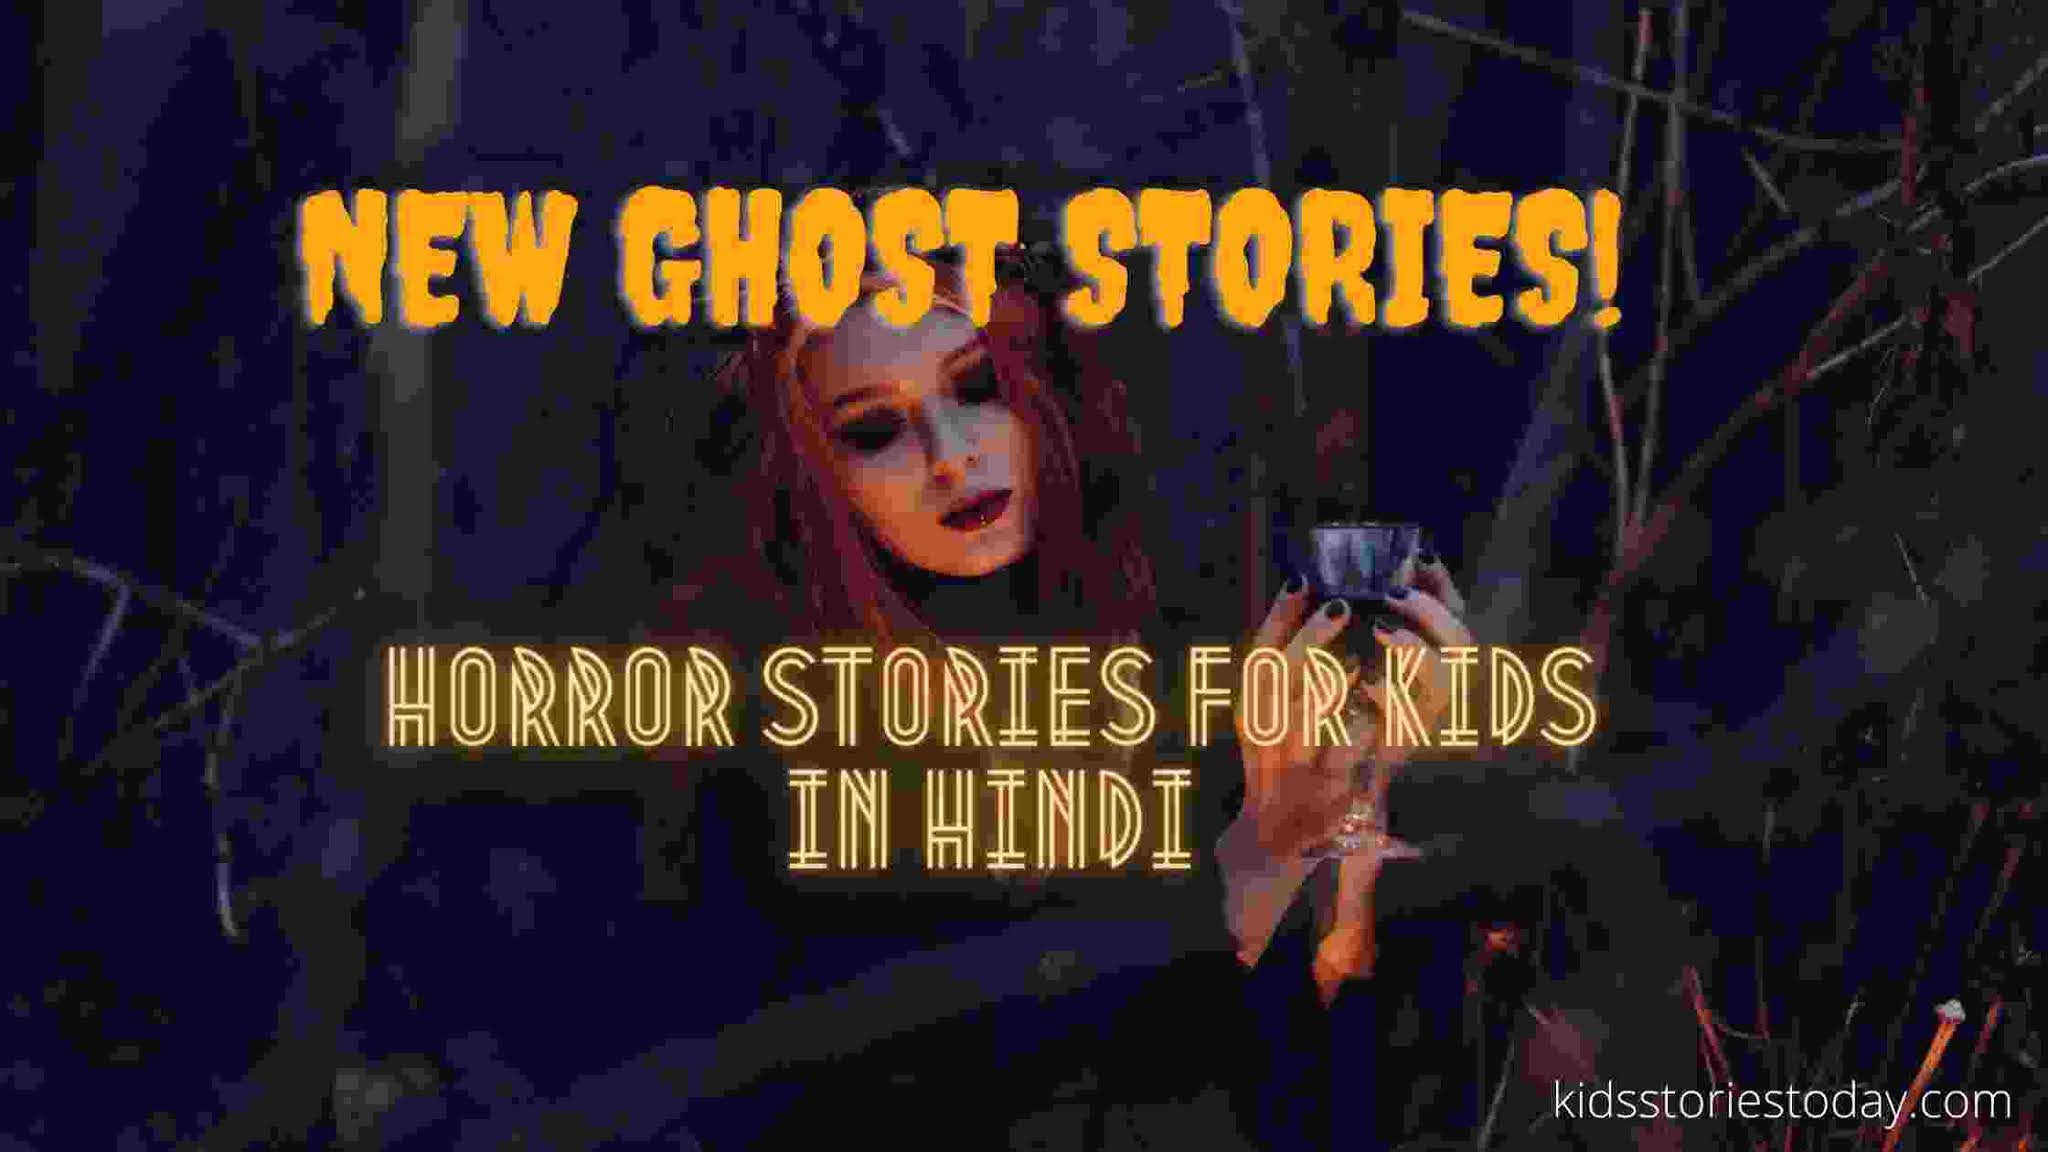 Horror Stories For Kids In Hindi || New Ghost Stories